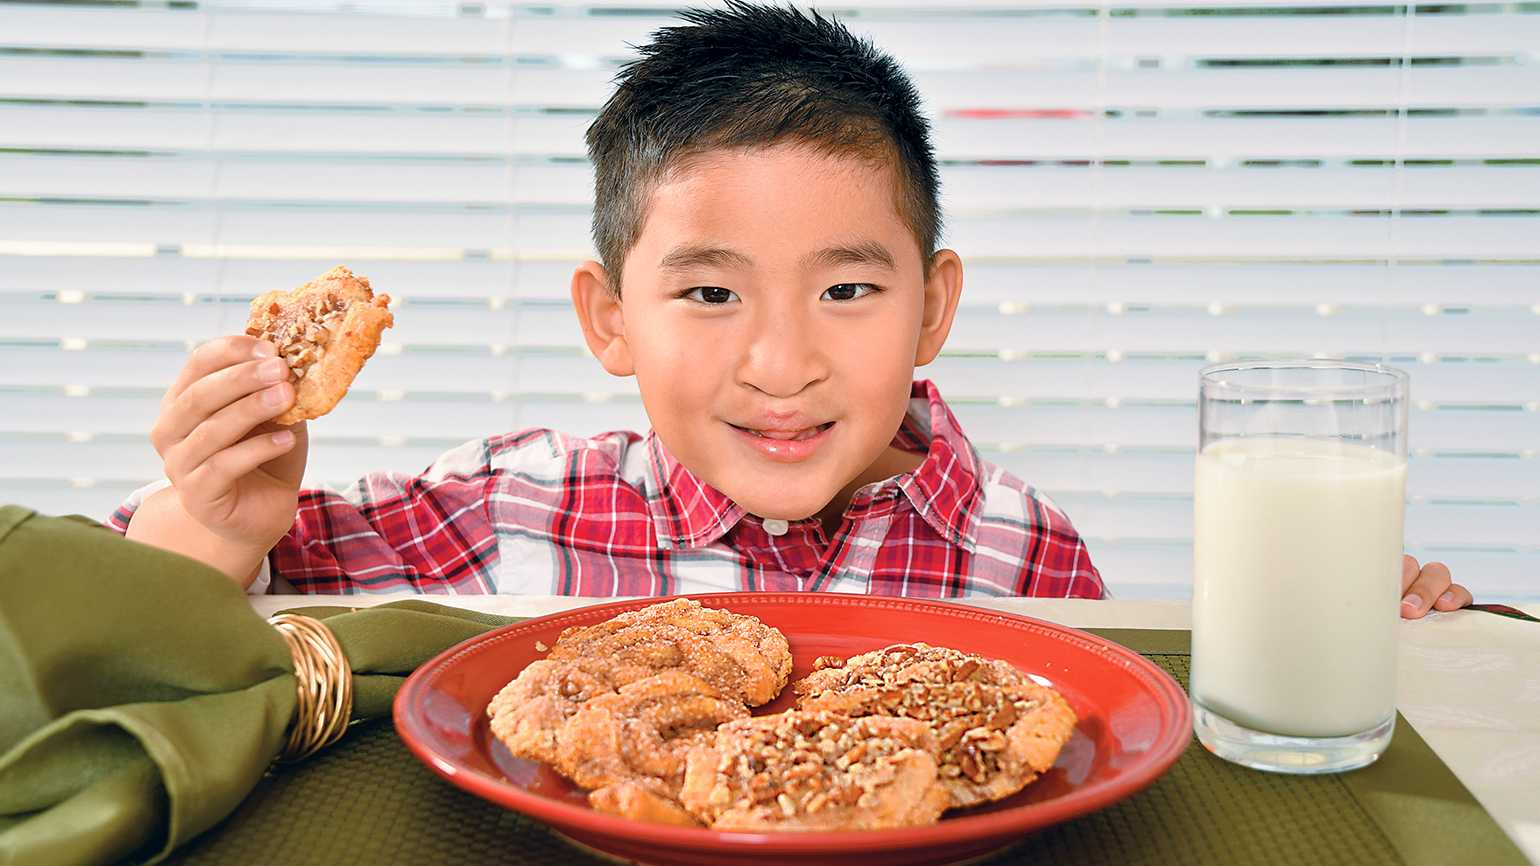 Becky's son Samuel smiles over a plate of the cinnamon crips that he helped to make